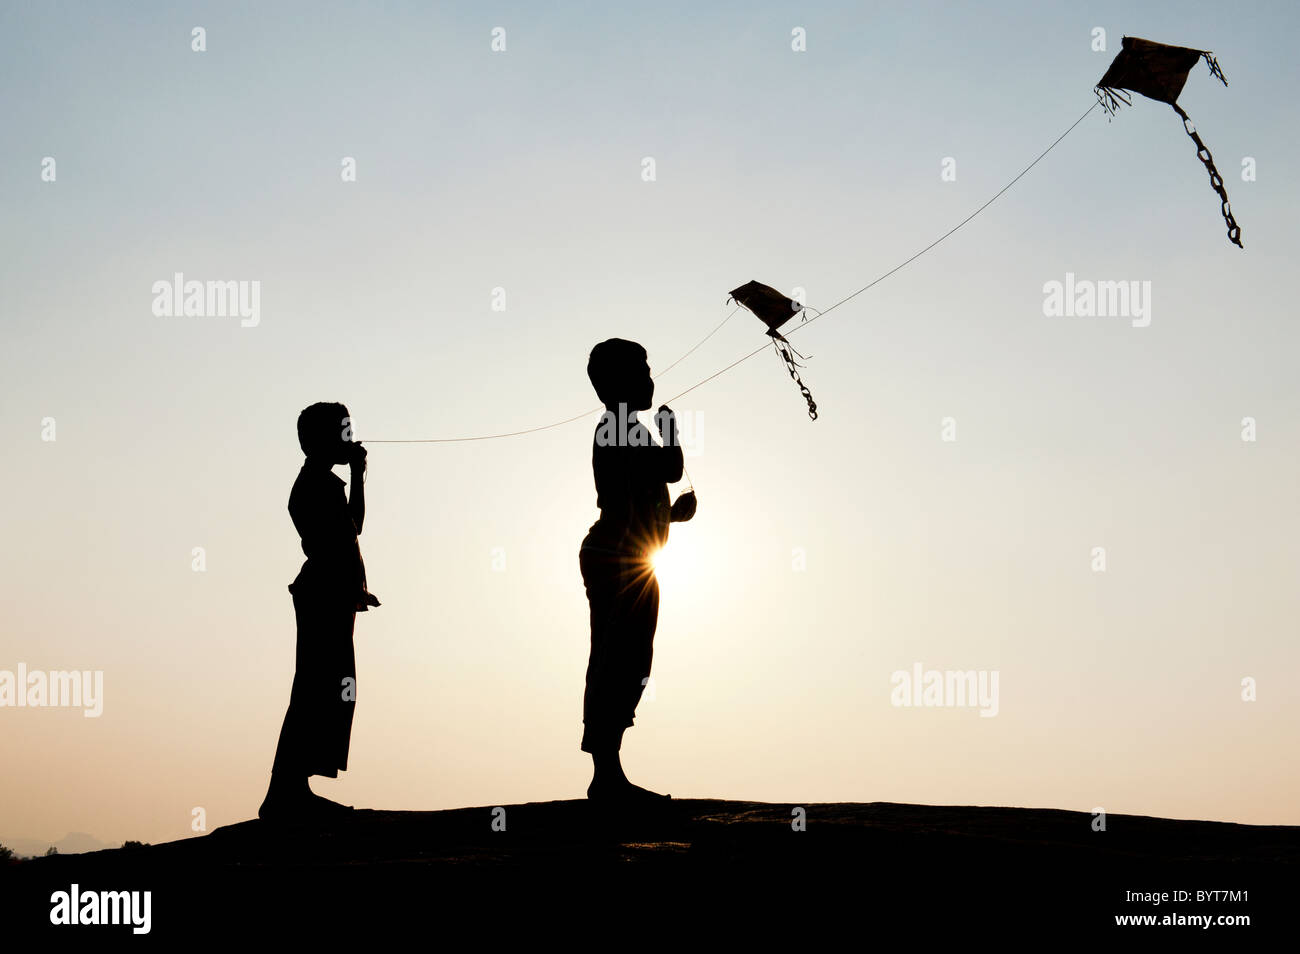 Young indian boys having fun flying handmade paper kites in the indian countryside. Silhouette - Stock Image